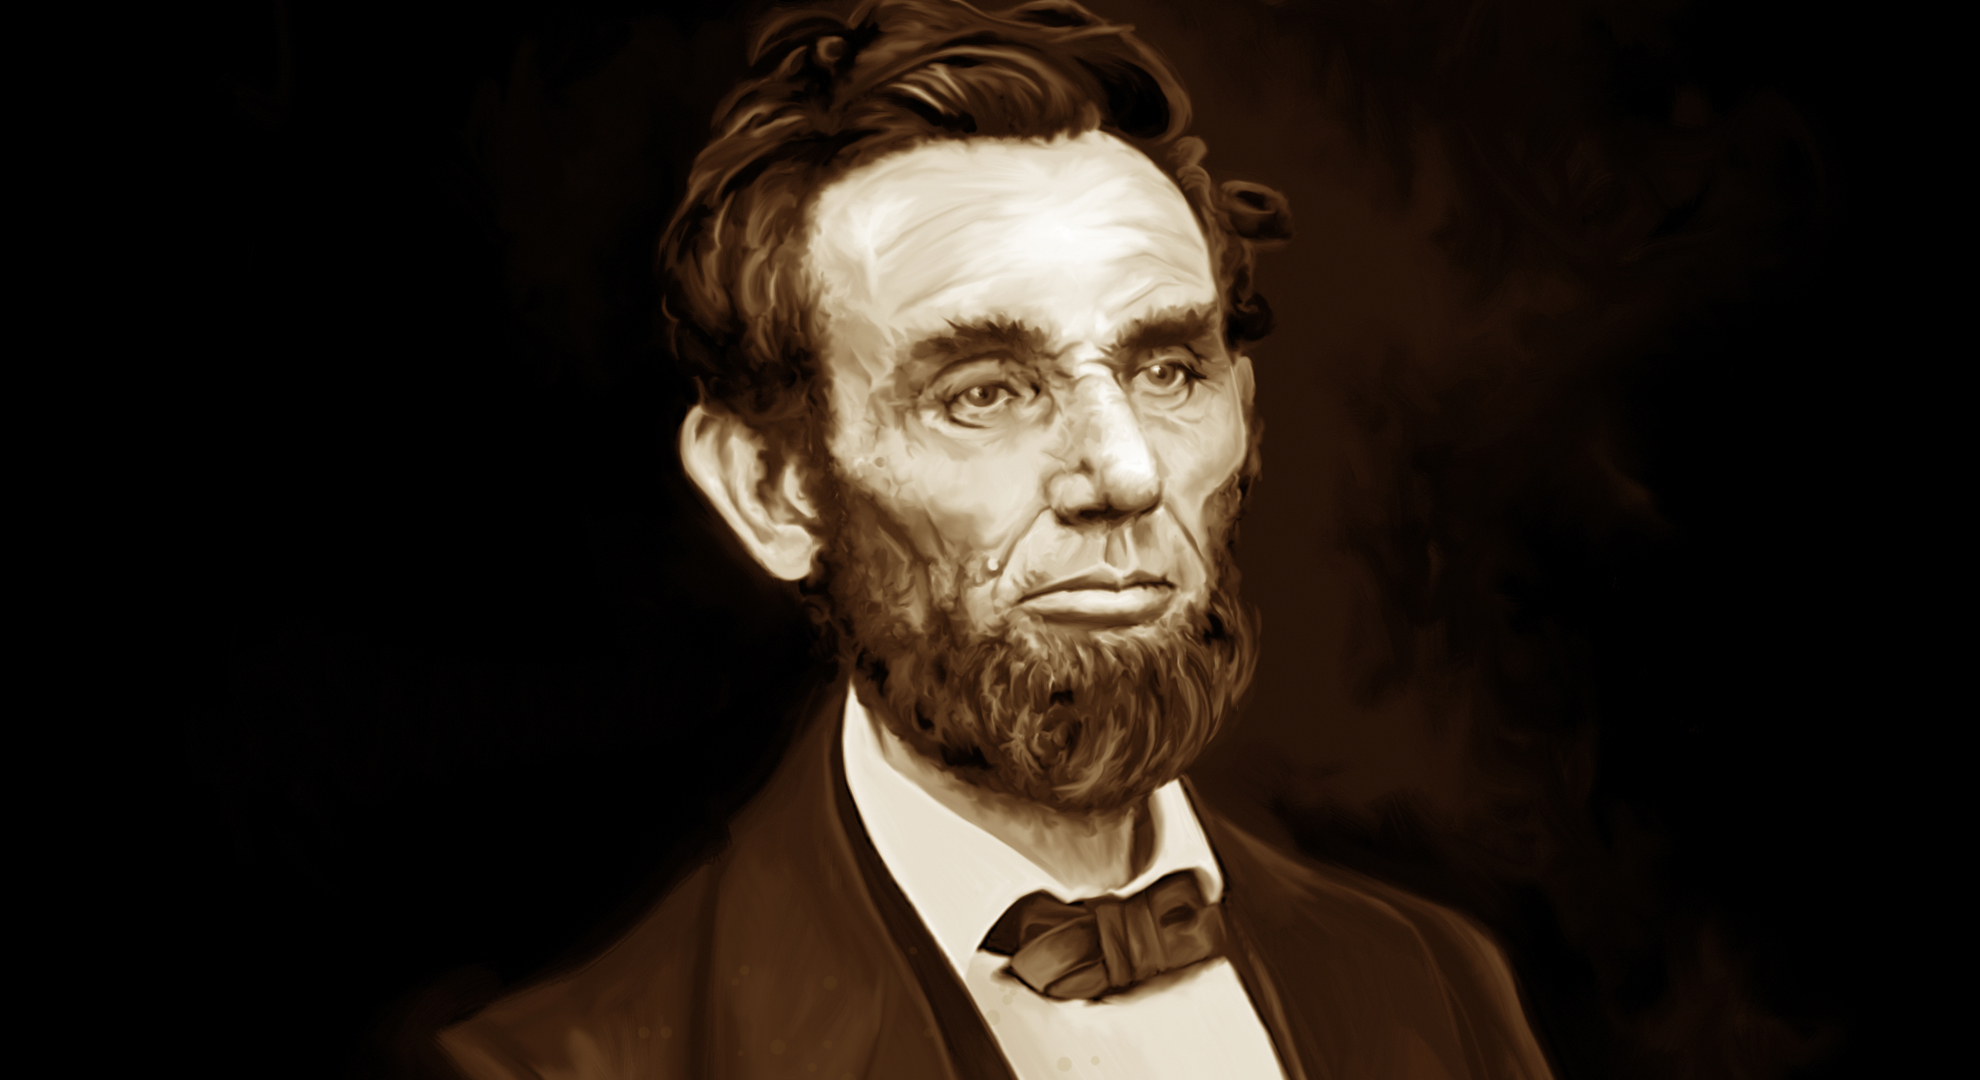 Interactive: The Gettysburg Address